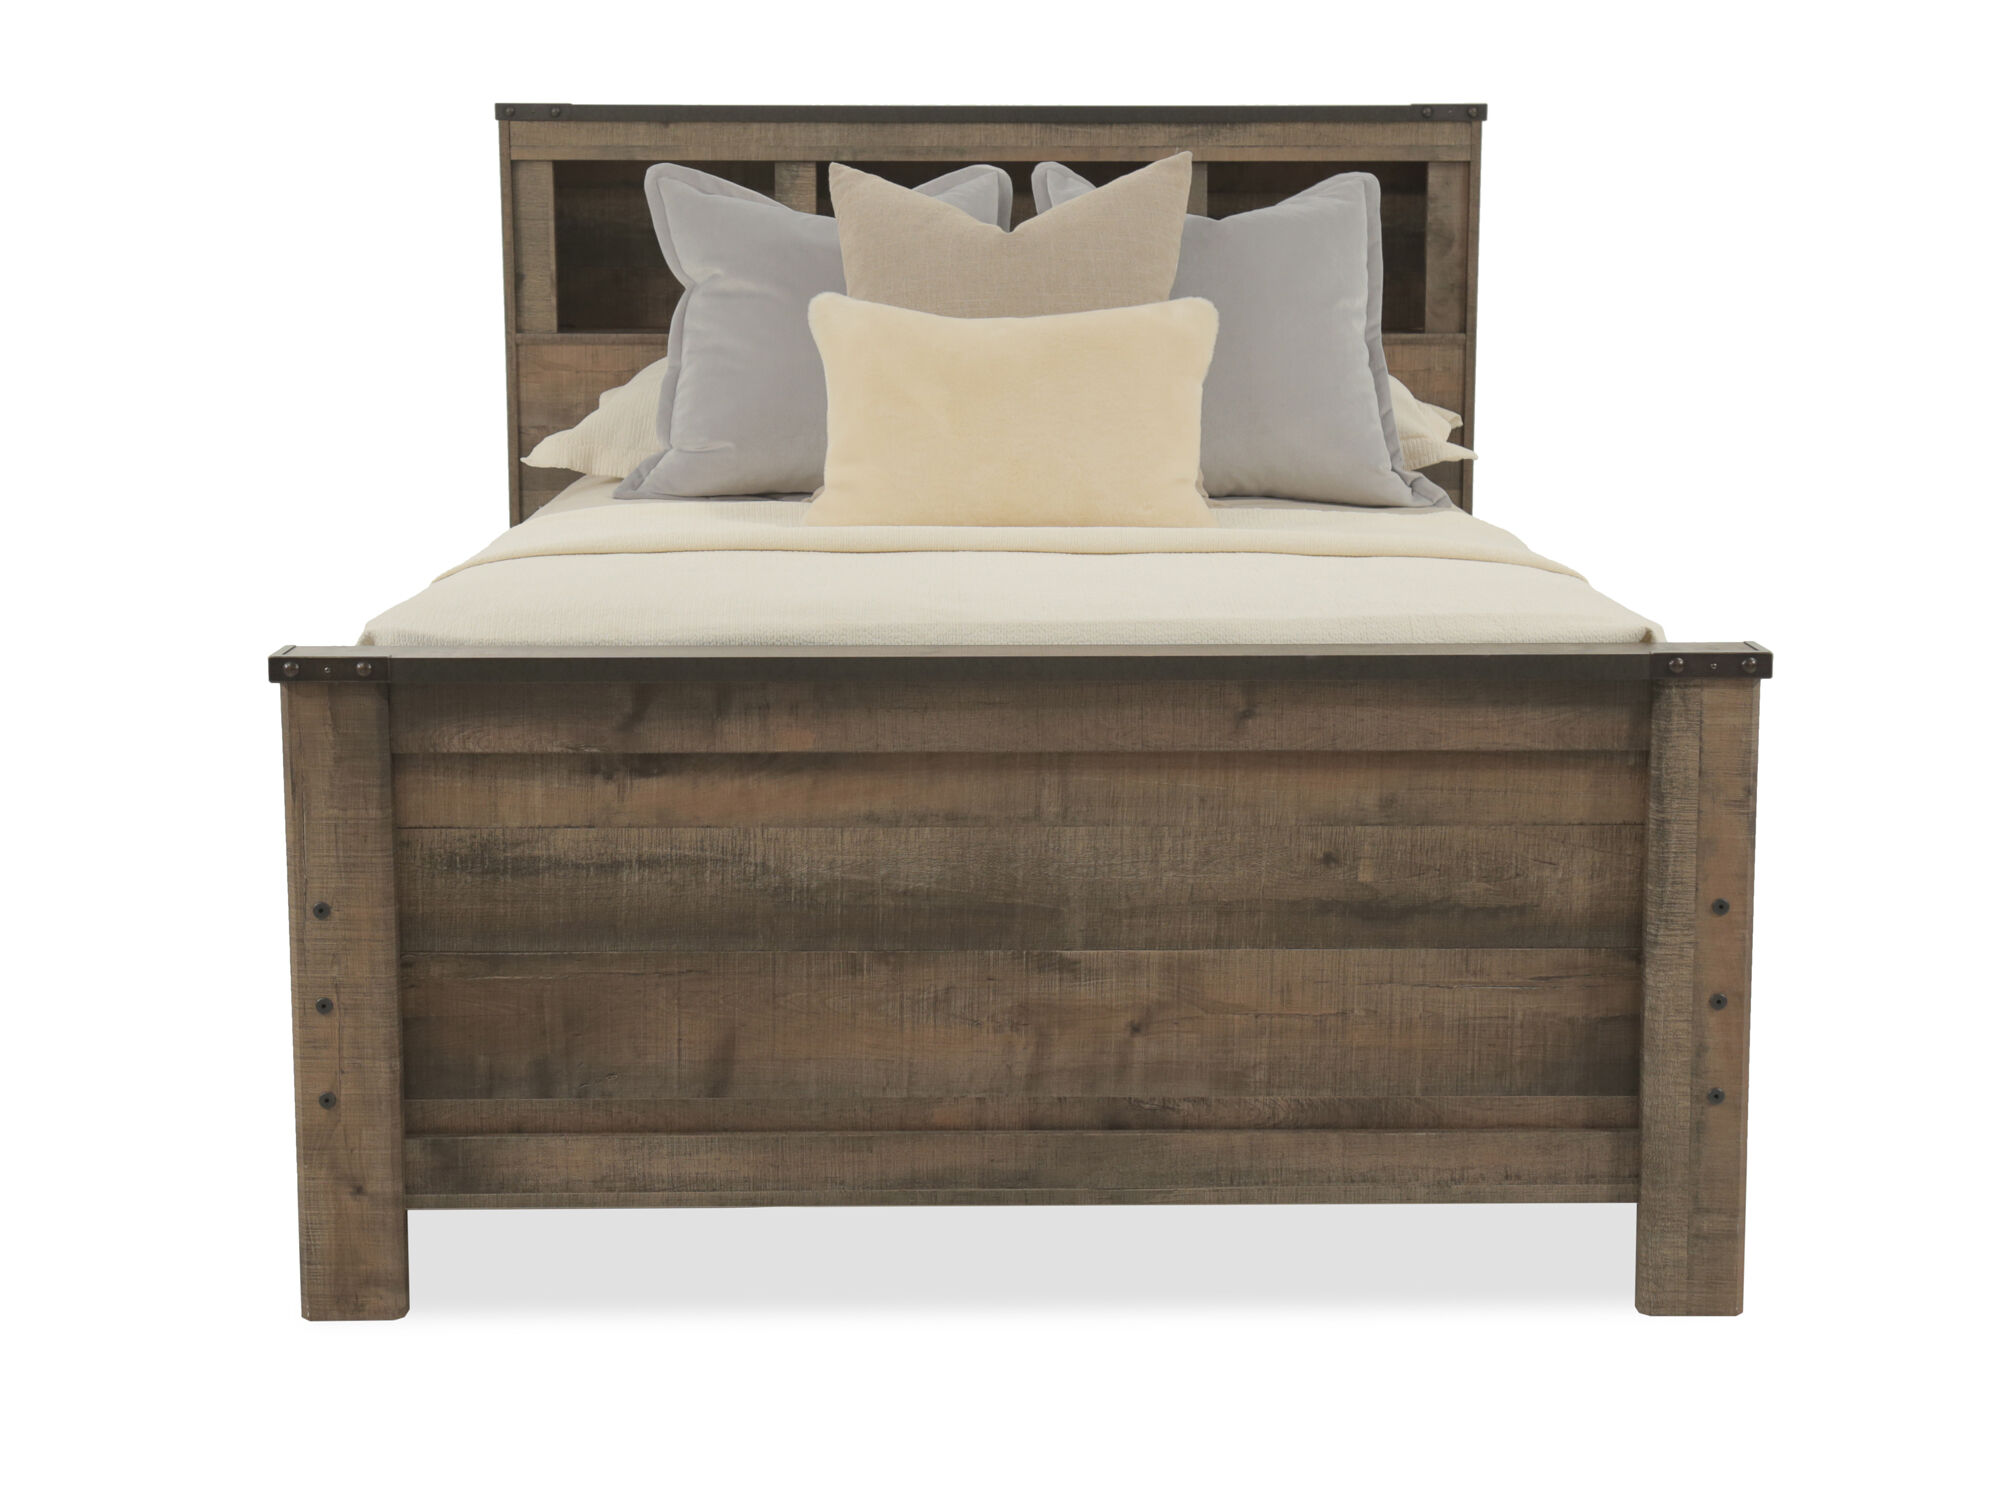 Rustic Farmhouse Planked Youth Bookcase Bed With Storage In